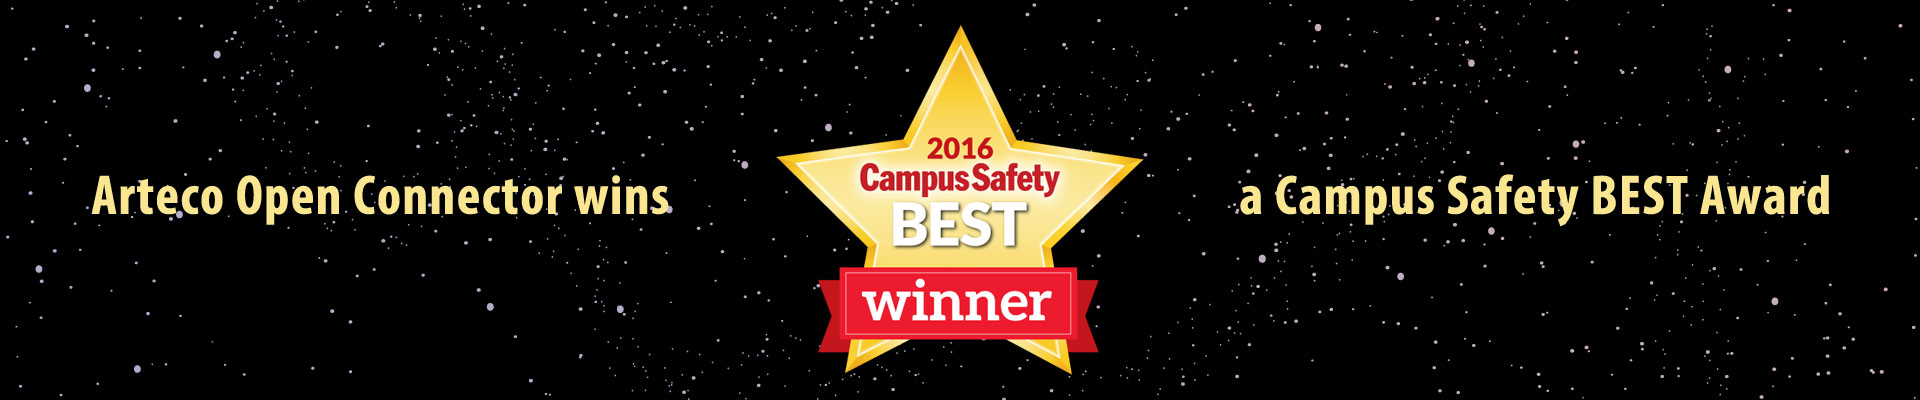 banner-Campus-Safety-BEST-Award